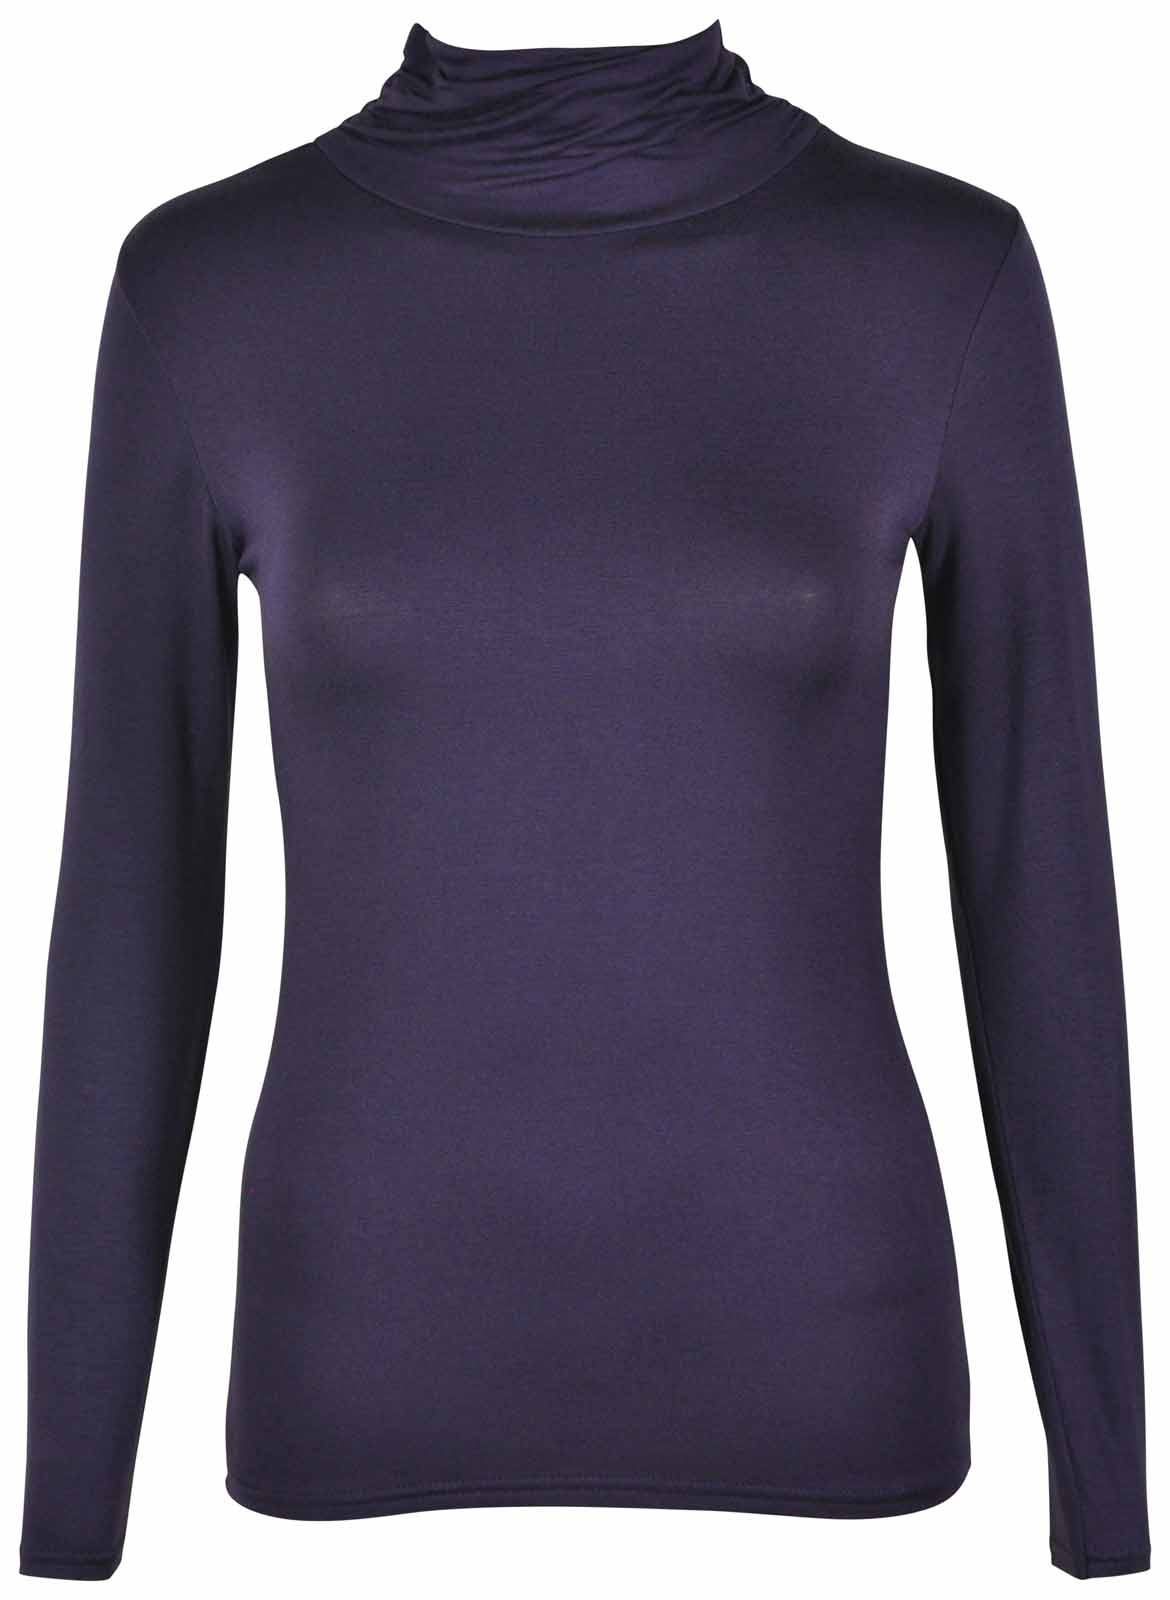 LADIES-BASIC-GATHERED-POLO-ROLL-NECK-NEW-WOMENS-LONG-SLEEVE-STRETCH-CASUAL-TOP